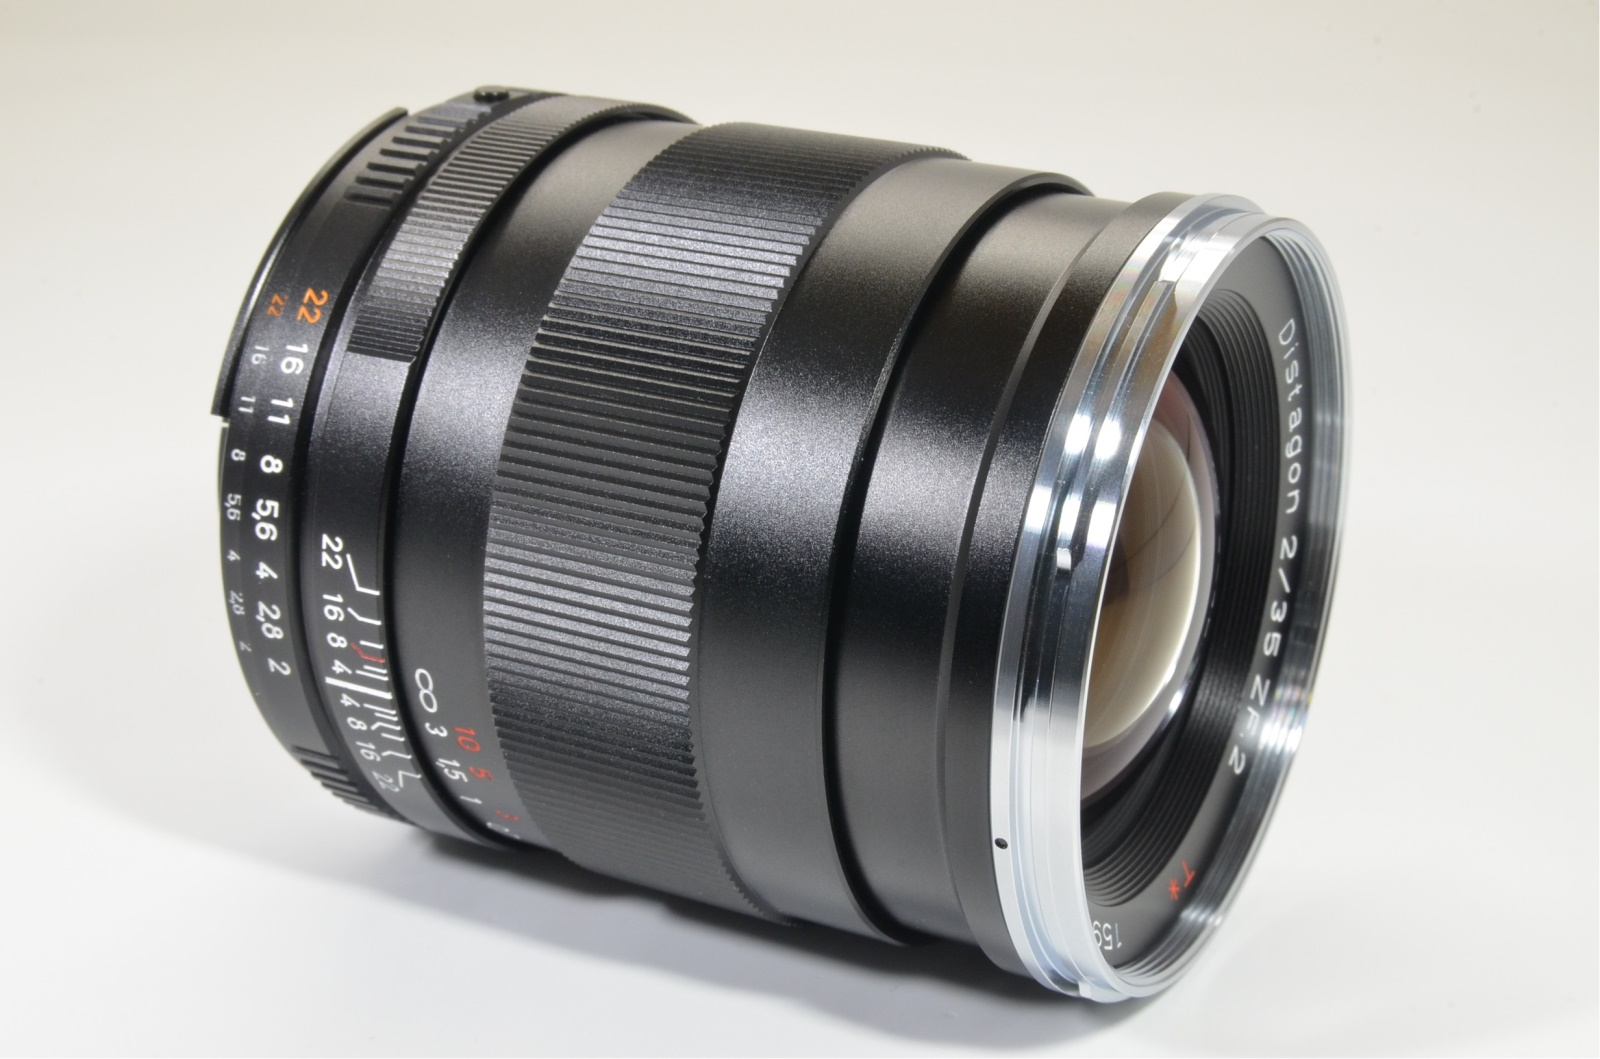 carl zeiss distagon t* 35mm f2 zf.2 lens for nikon from japan